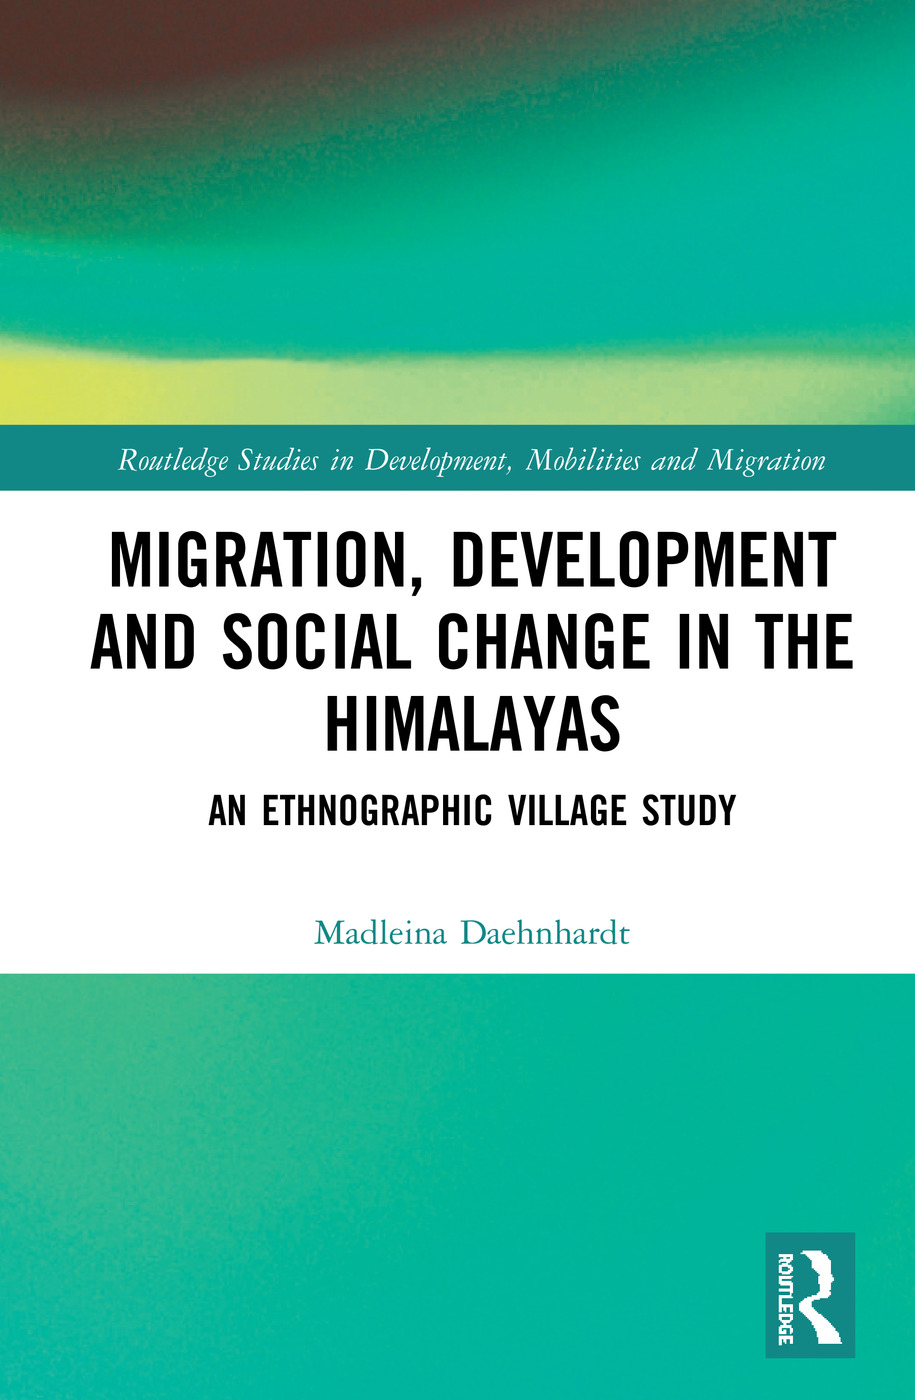 Migration, Development and Social Change in the Himalayas: An Ethnographic Village Study book cover